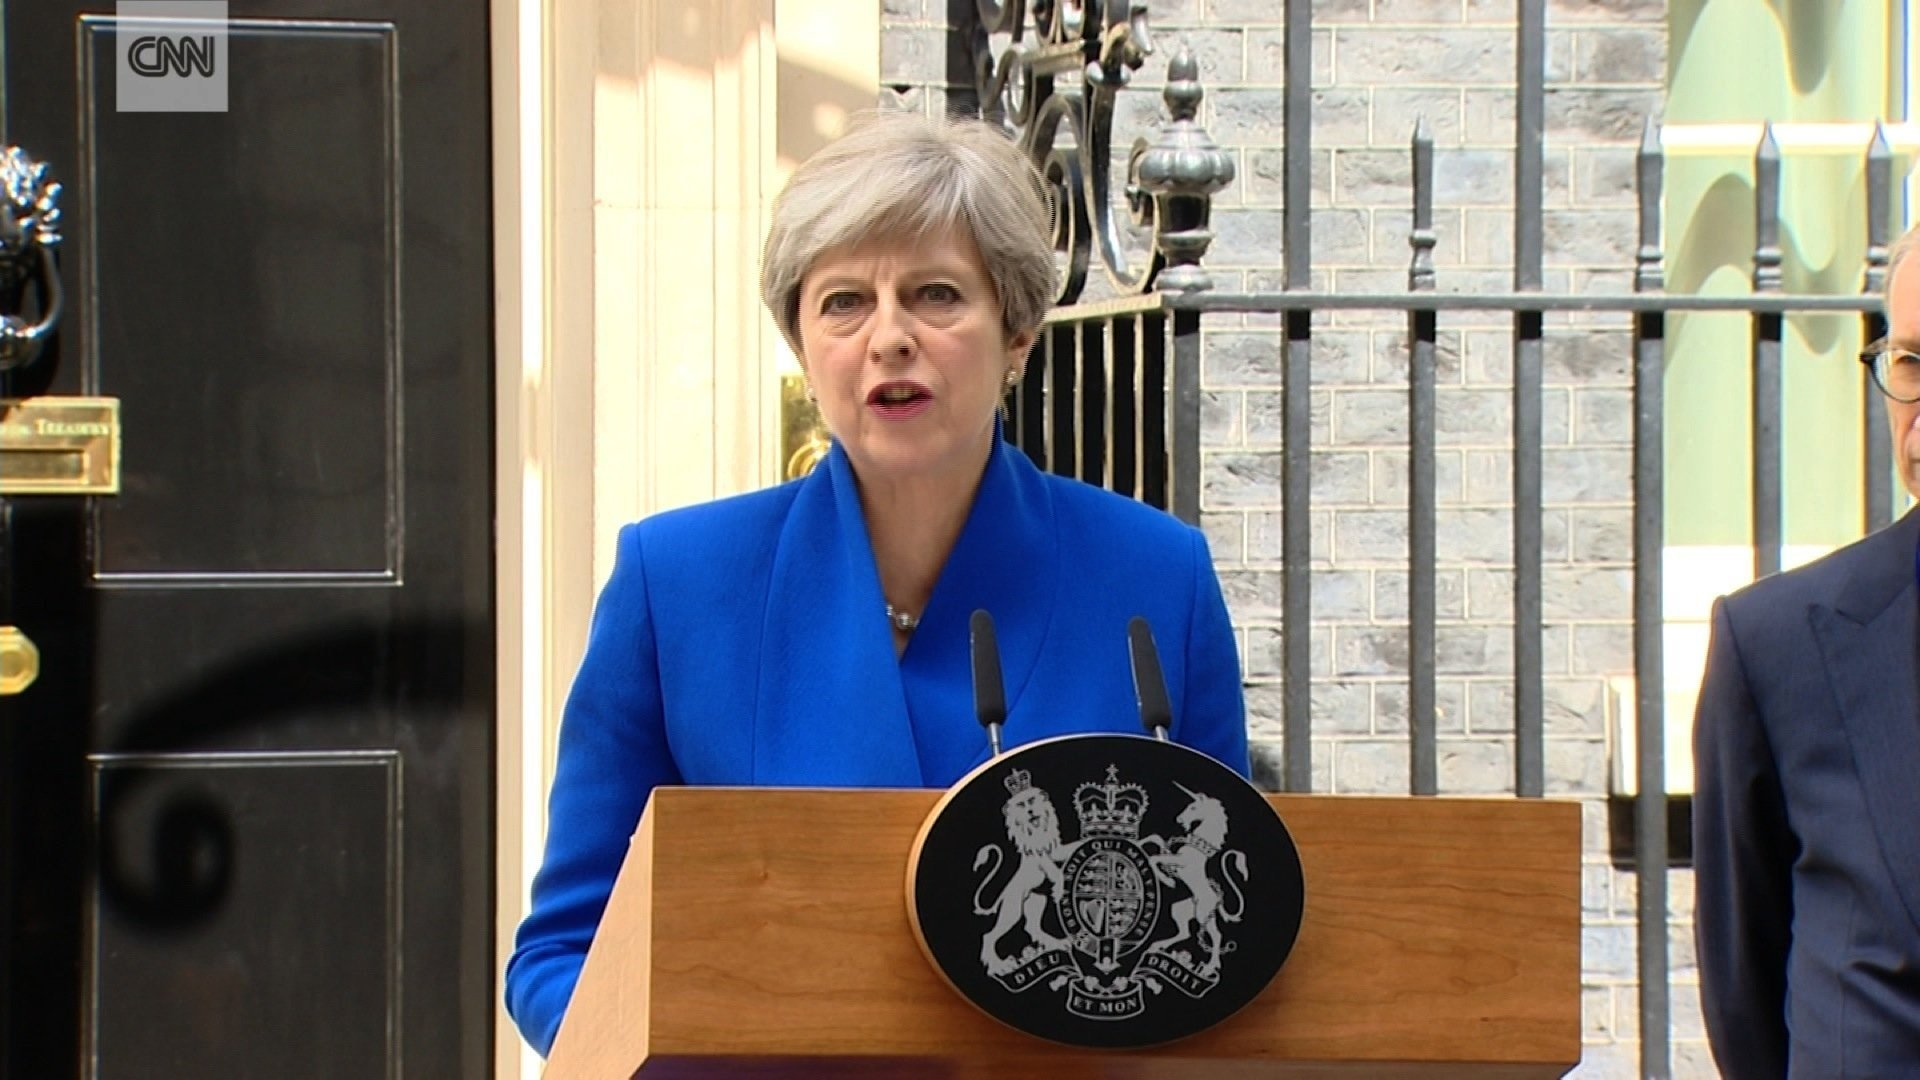 British Prime Minister Theresa May is seen here speaking in London in June 2017. (File Photo)